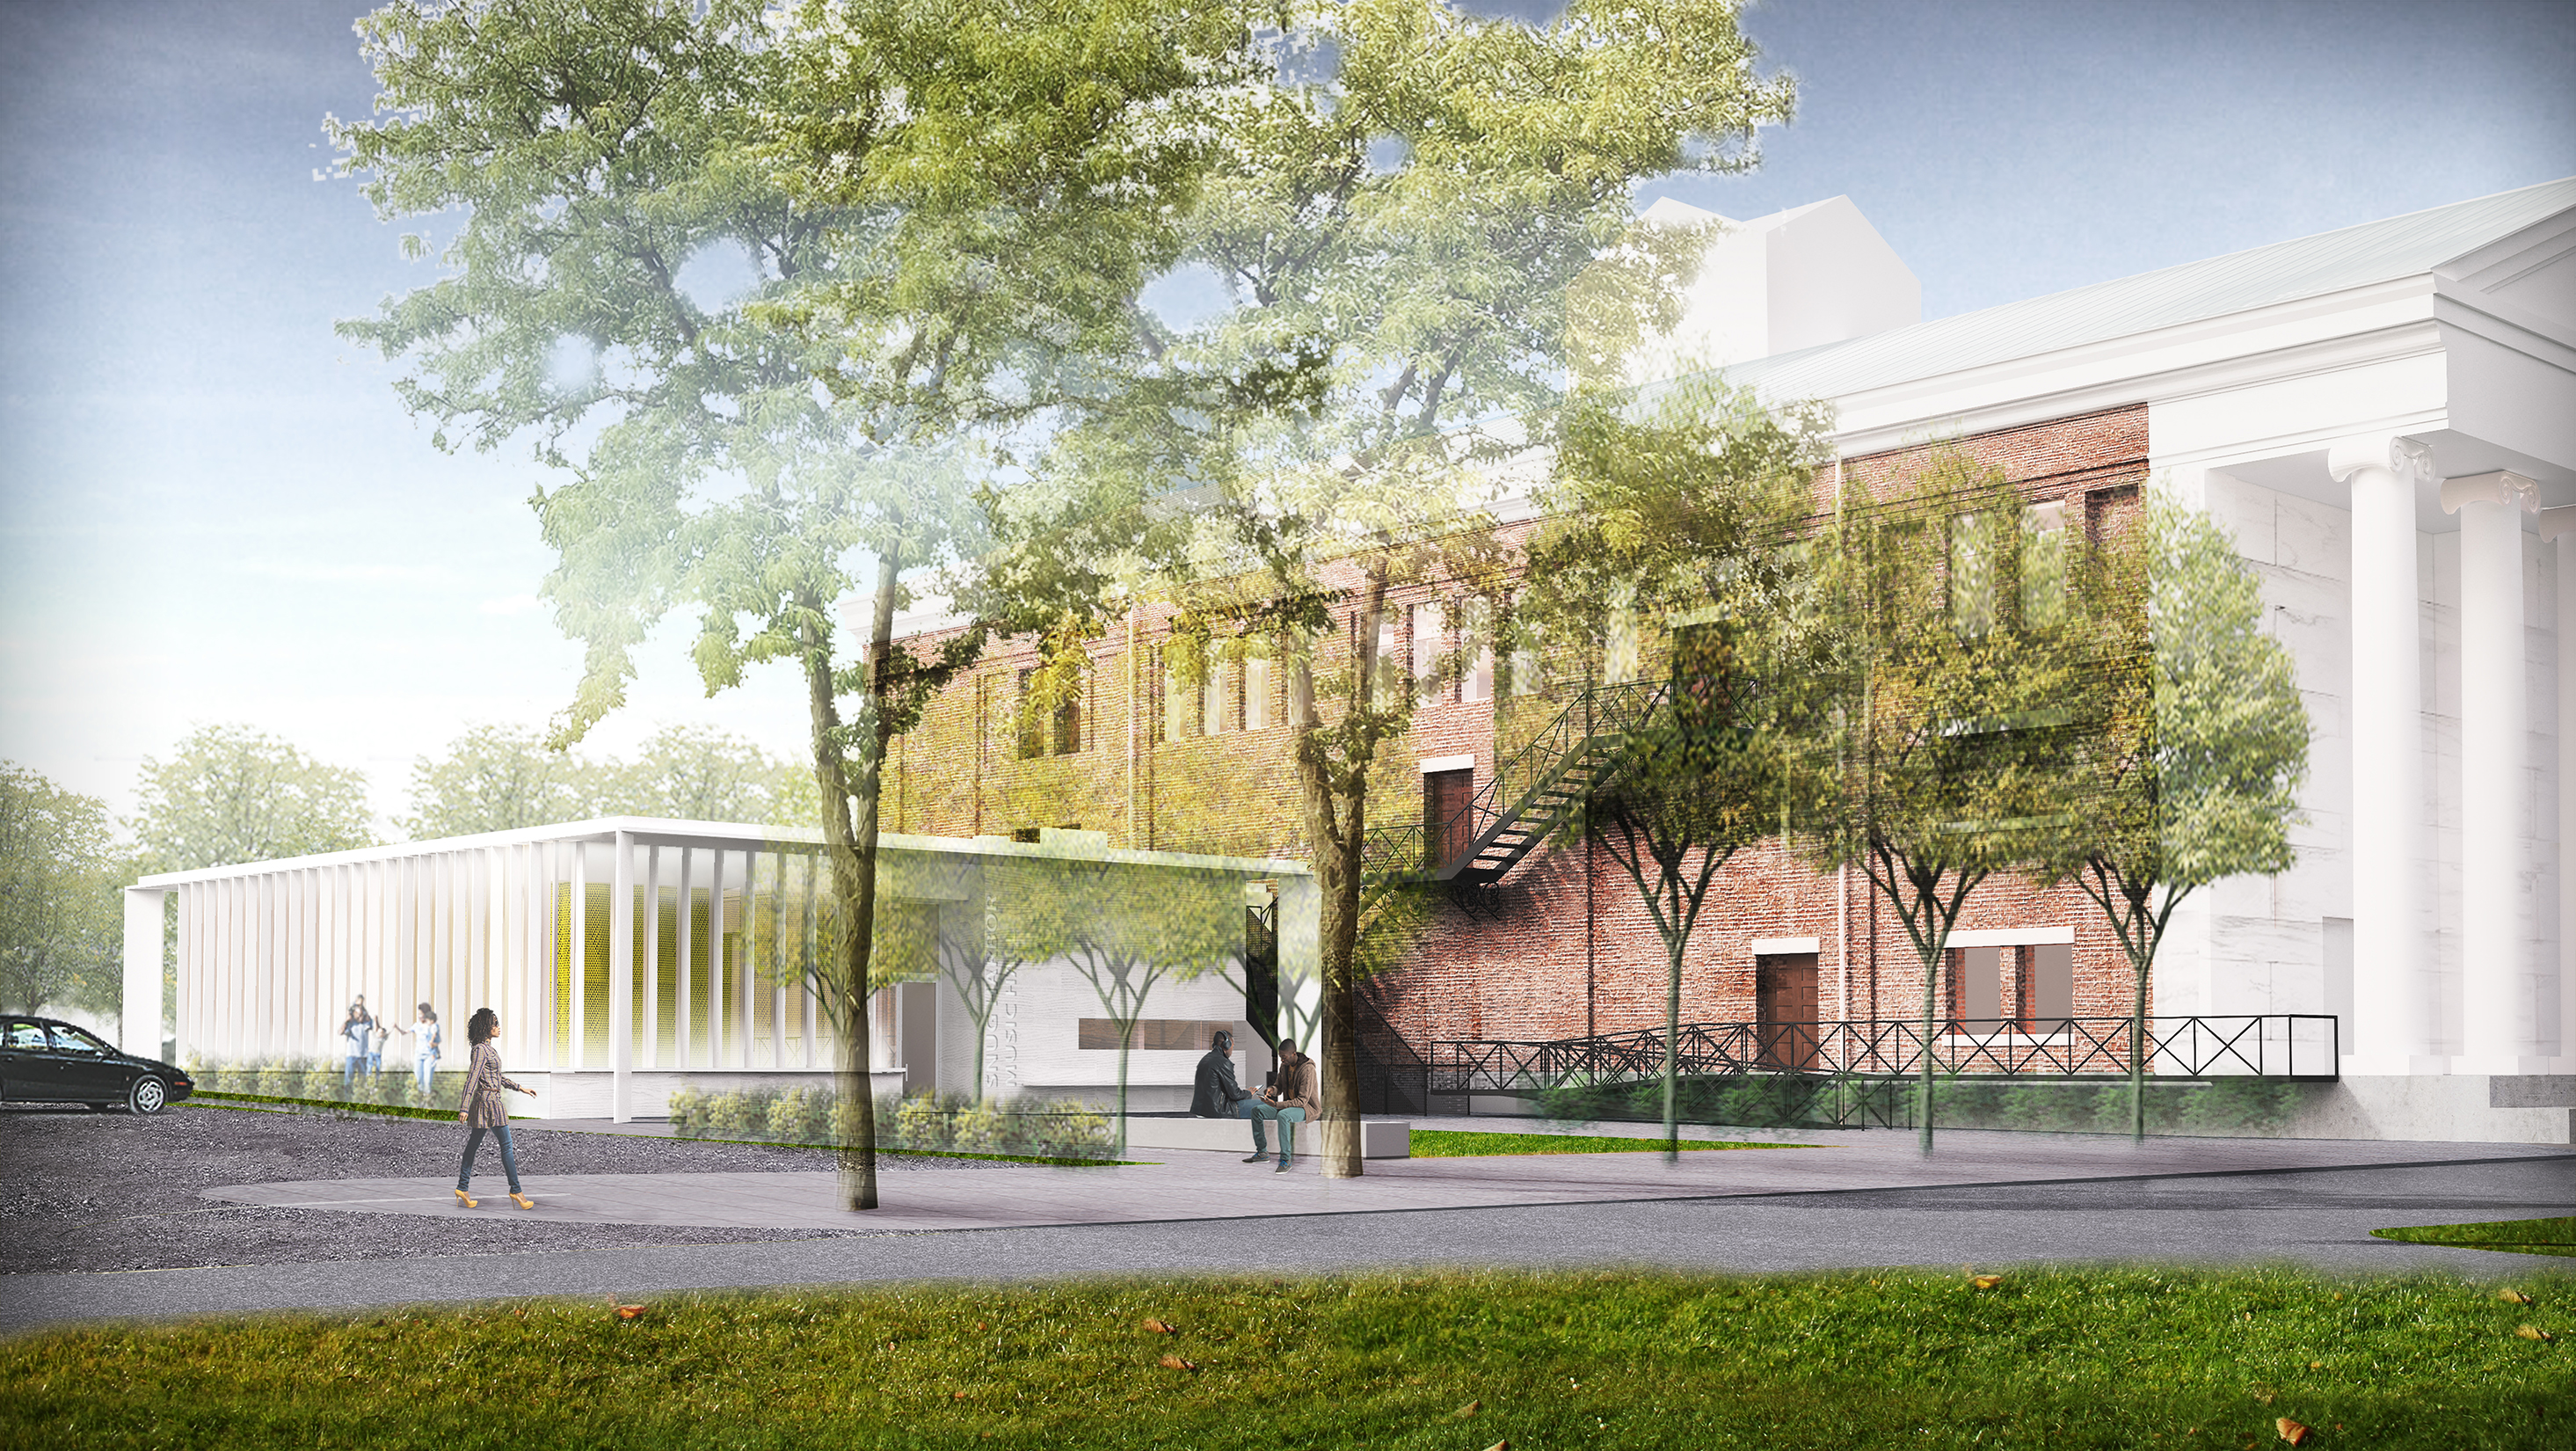 a rendering of the addition to the Snug Harbor Music Hall